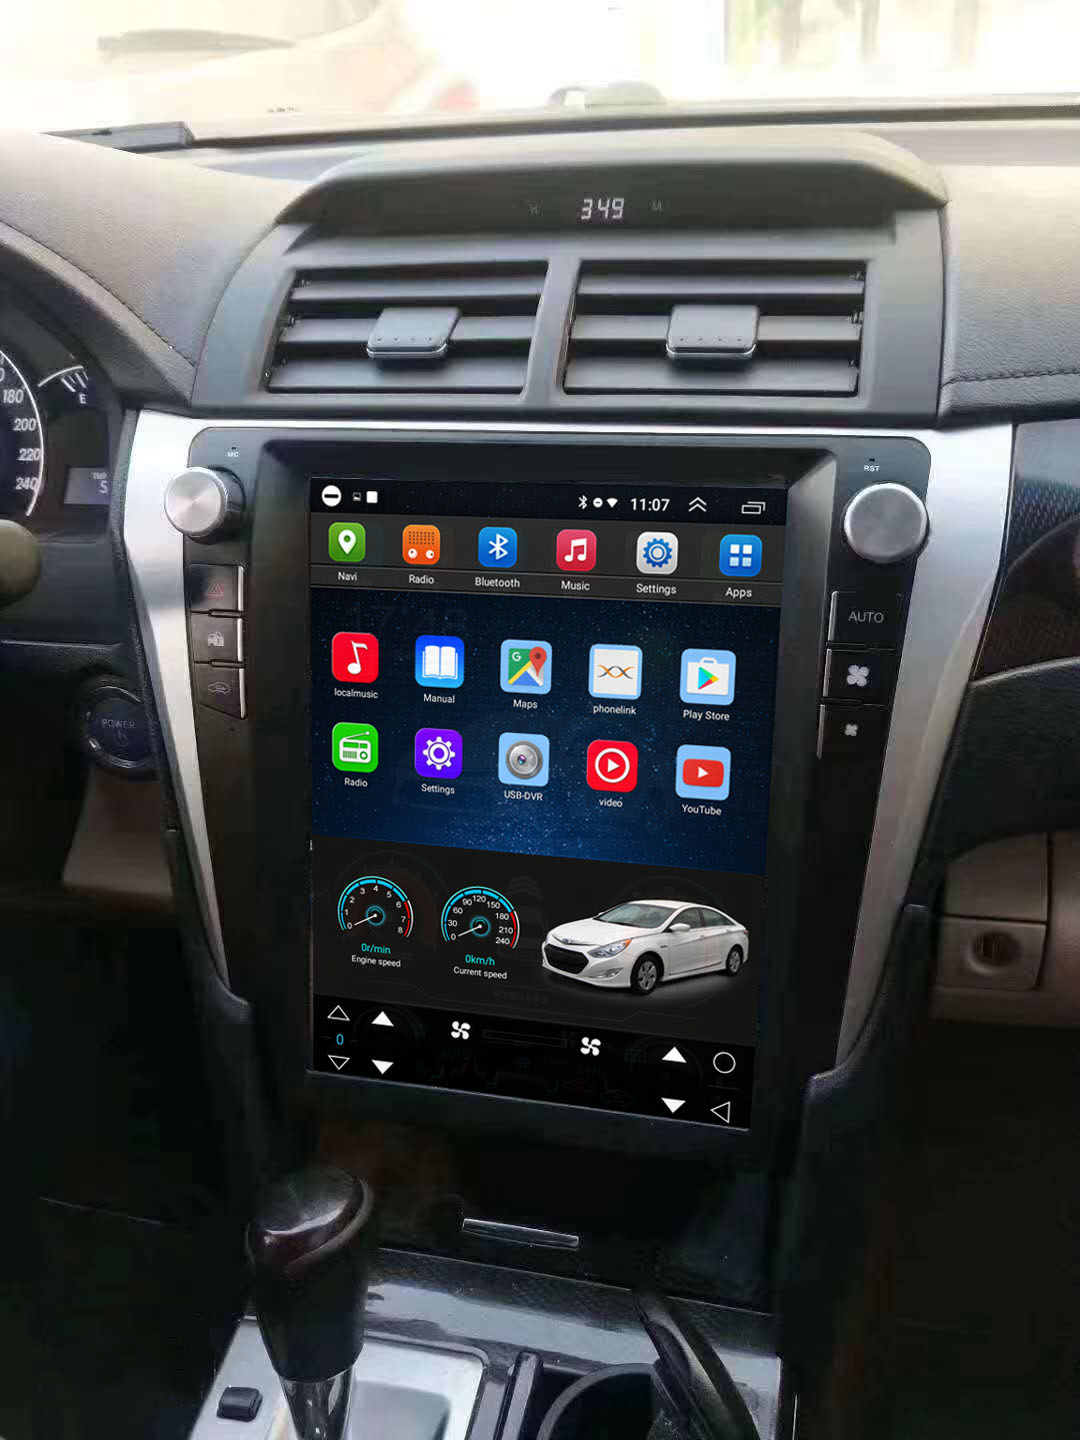 Vertical Screen 12.1 Inch Android Car Multimedia Navigation For Toyota Camry 2012-2015